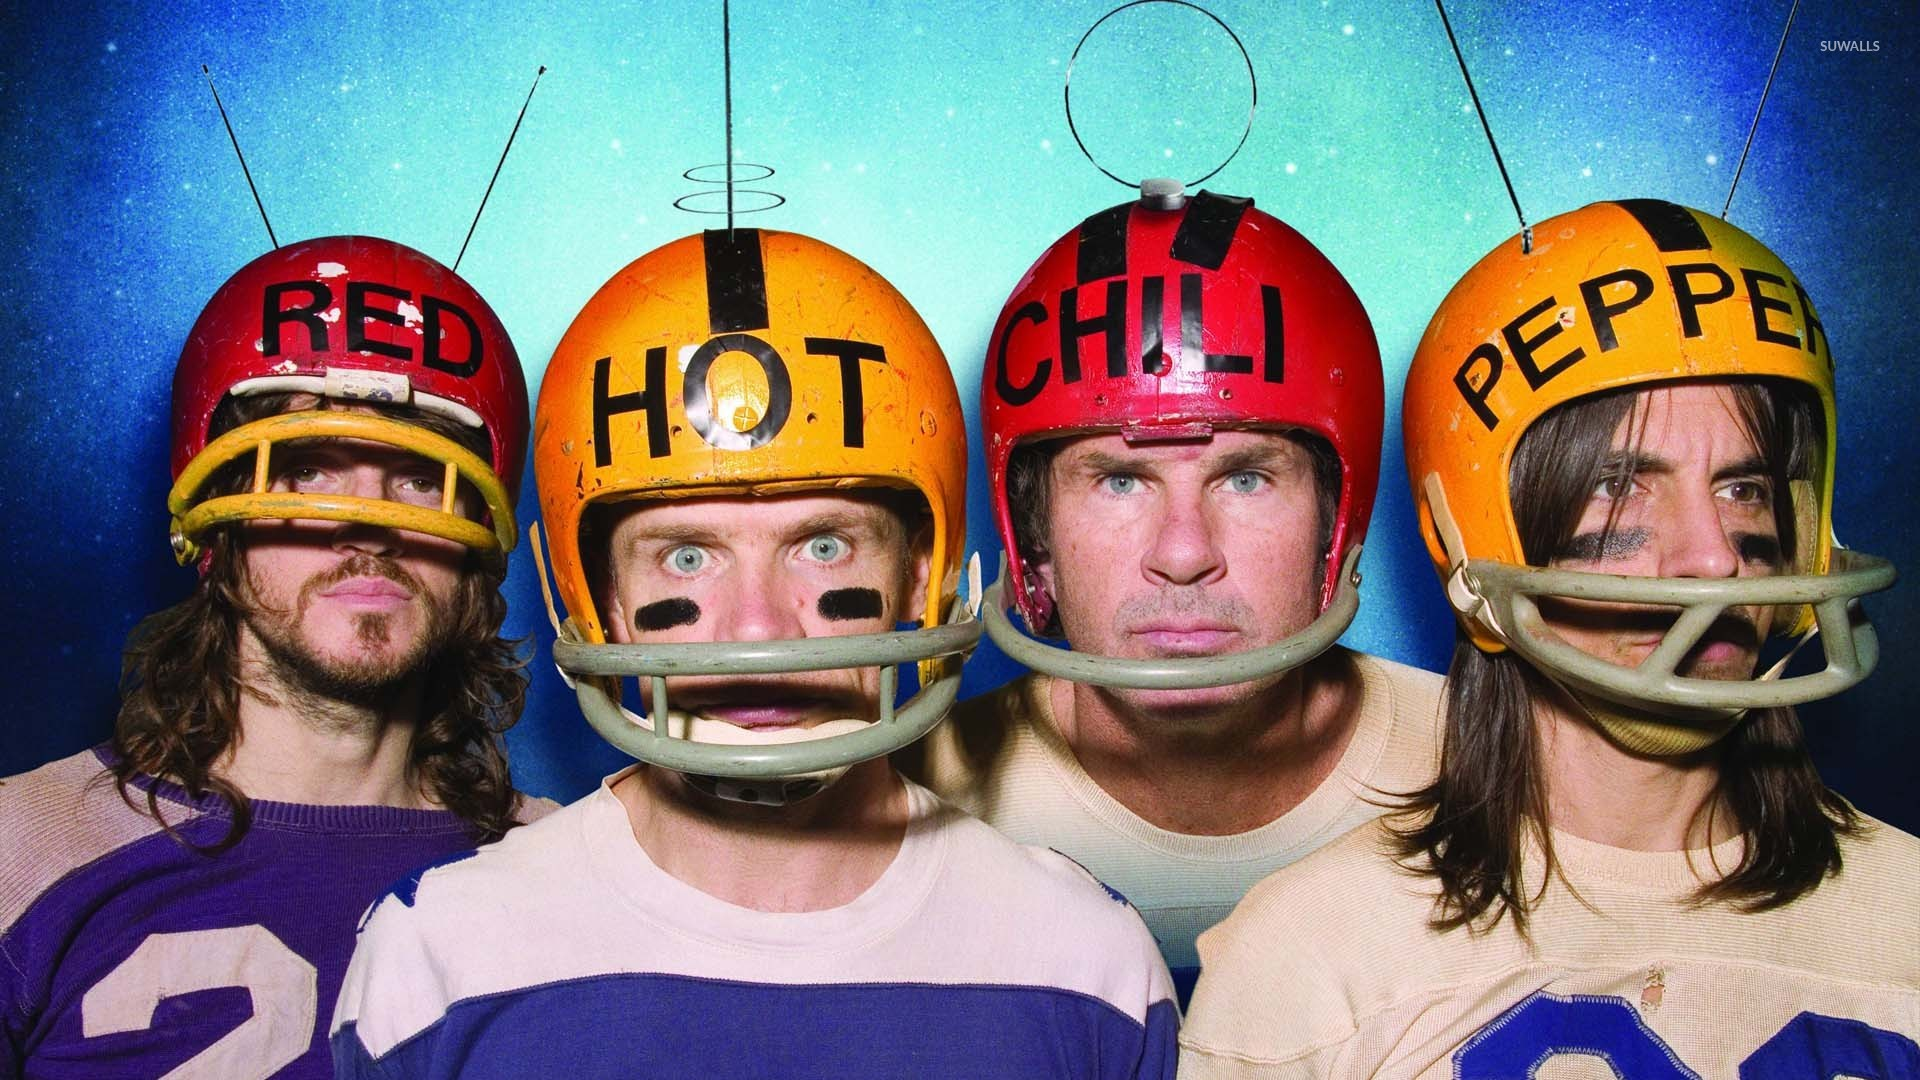 Red Hot Chili Peppers With Helmets Wallpaper Music Wallpapers 51611